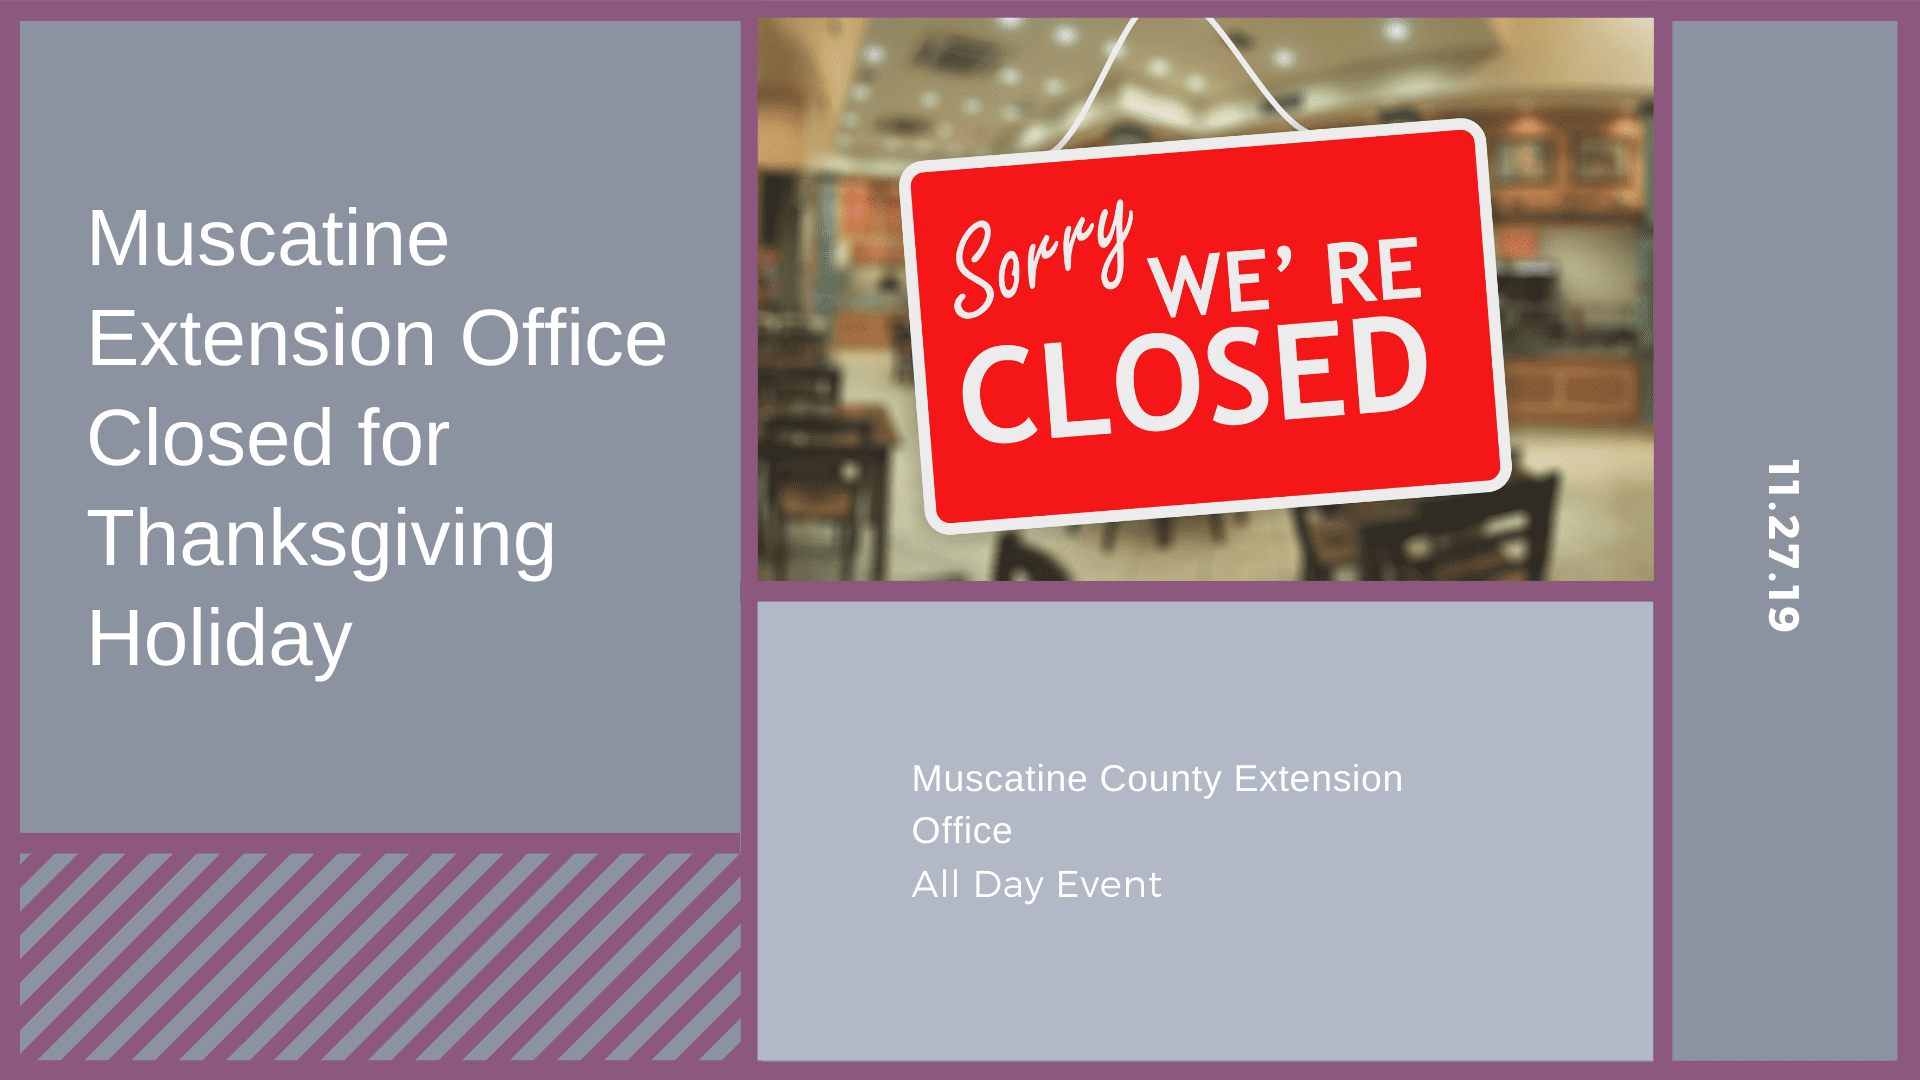 Muscatine Extension Office Closed for Thanksgiving Holiday